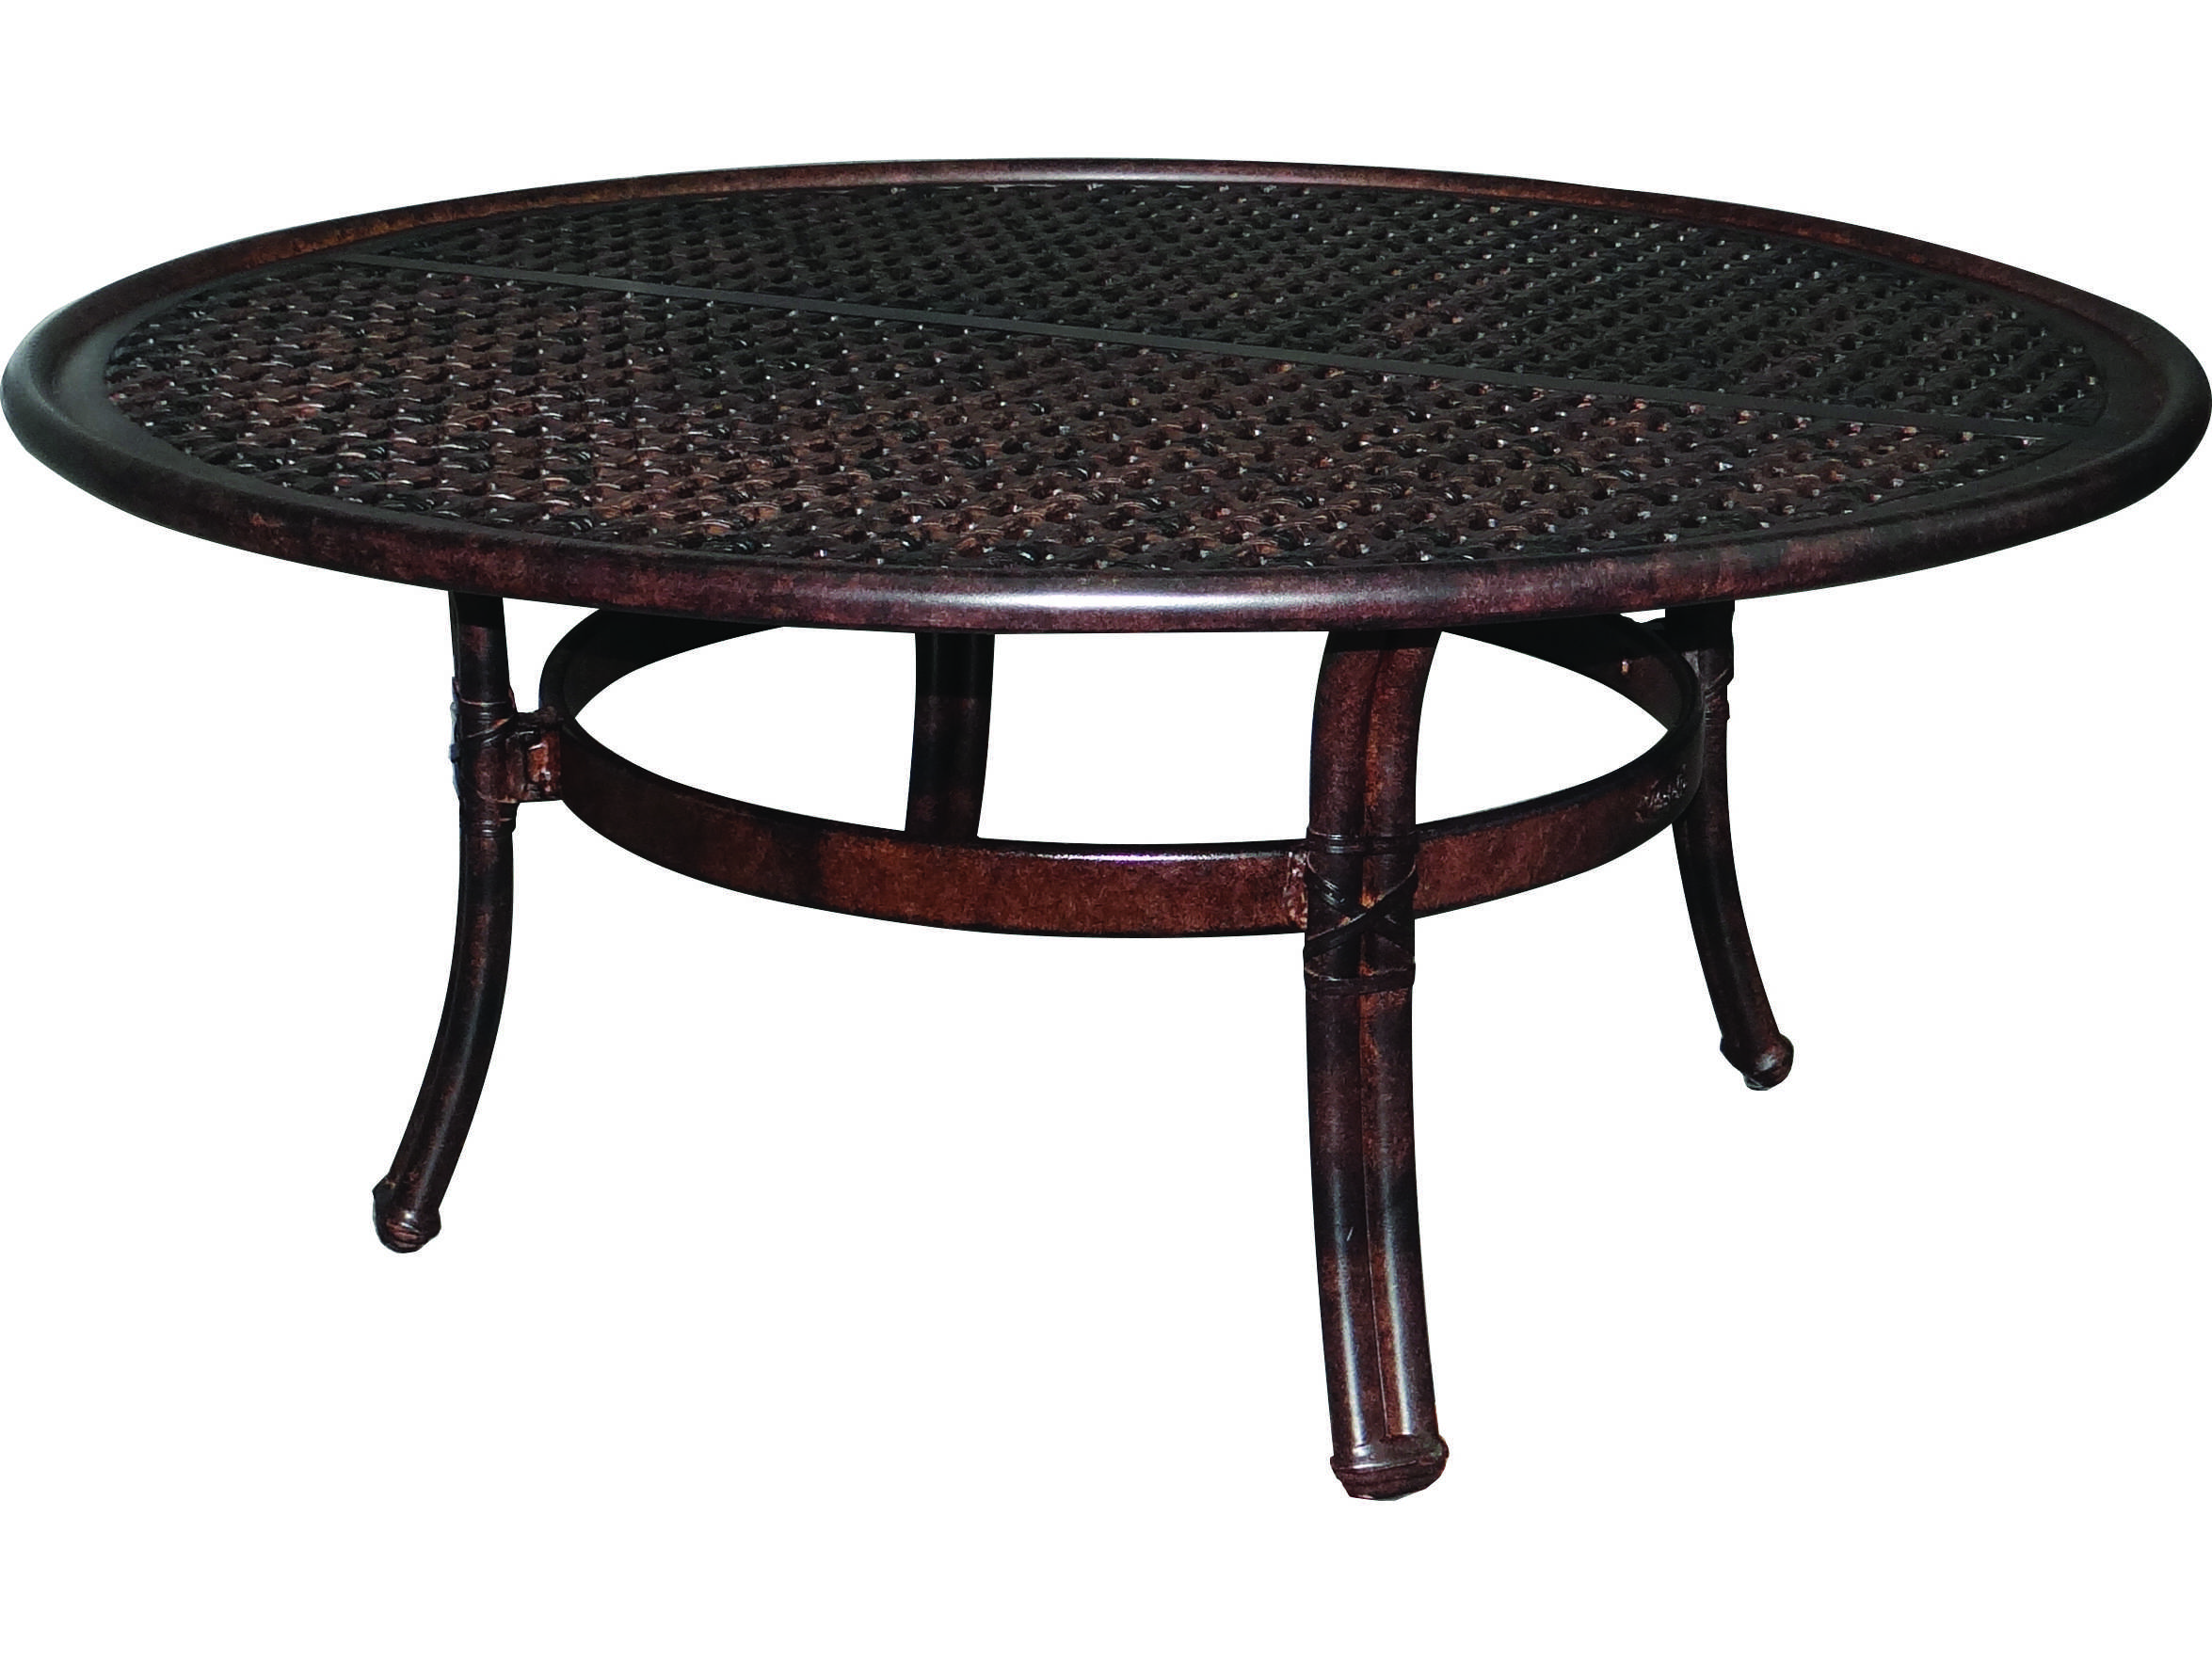 Castelle meridian cast aluminum 42 round coffee table ready to castelle meridian cast aluminum 42 round coffee table ready to assemble geotapseo Image collections